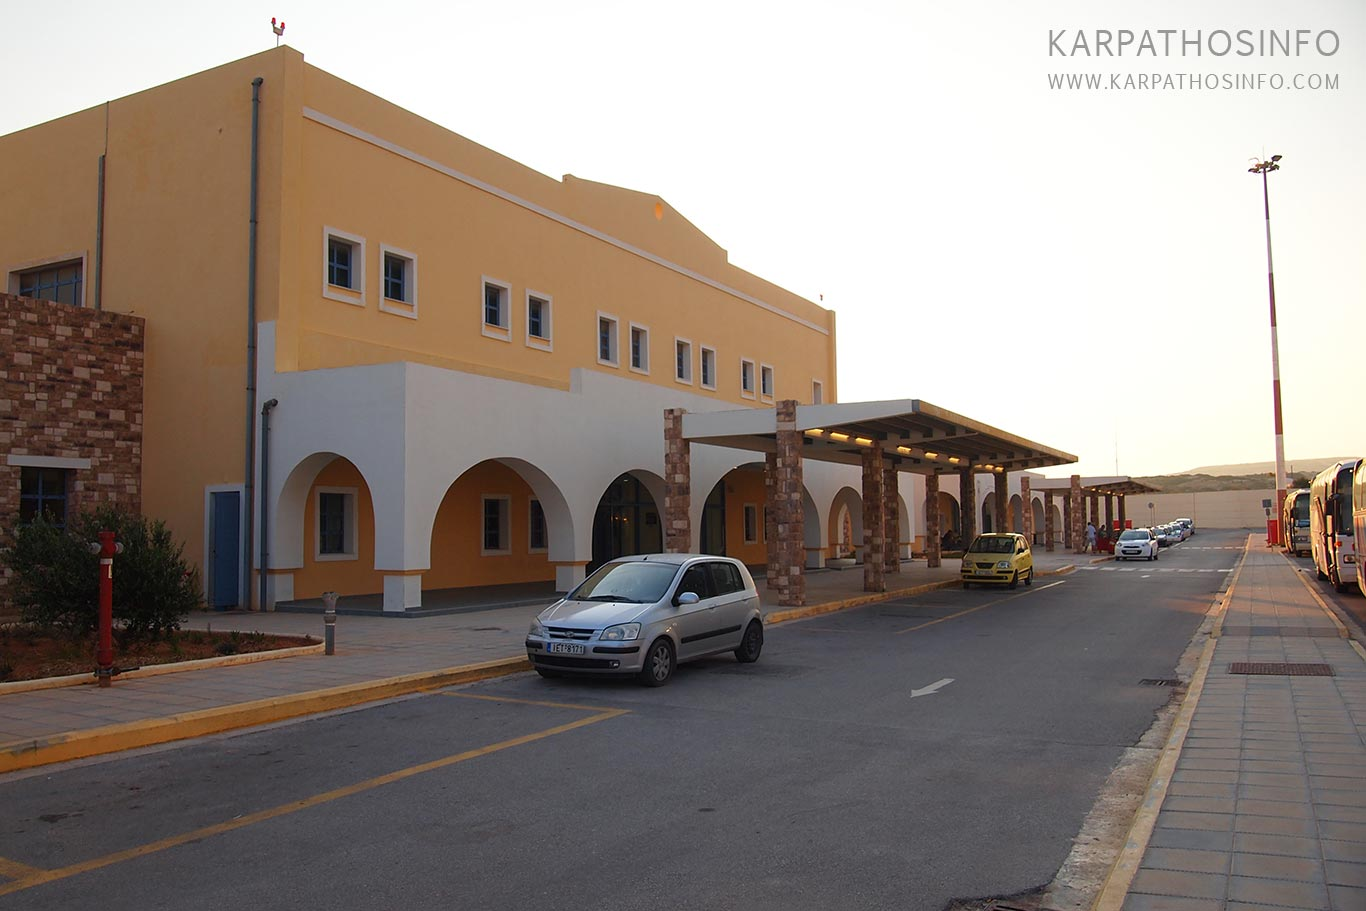 Karpathos airport, Greece